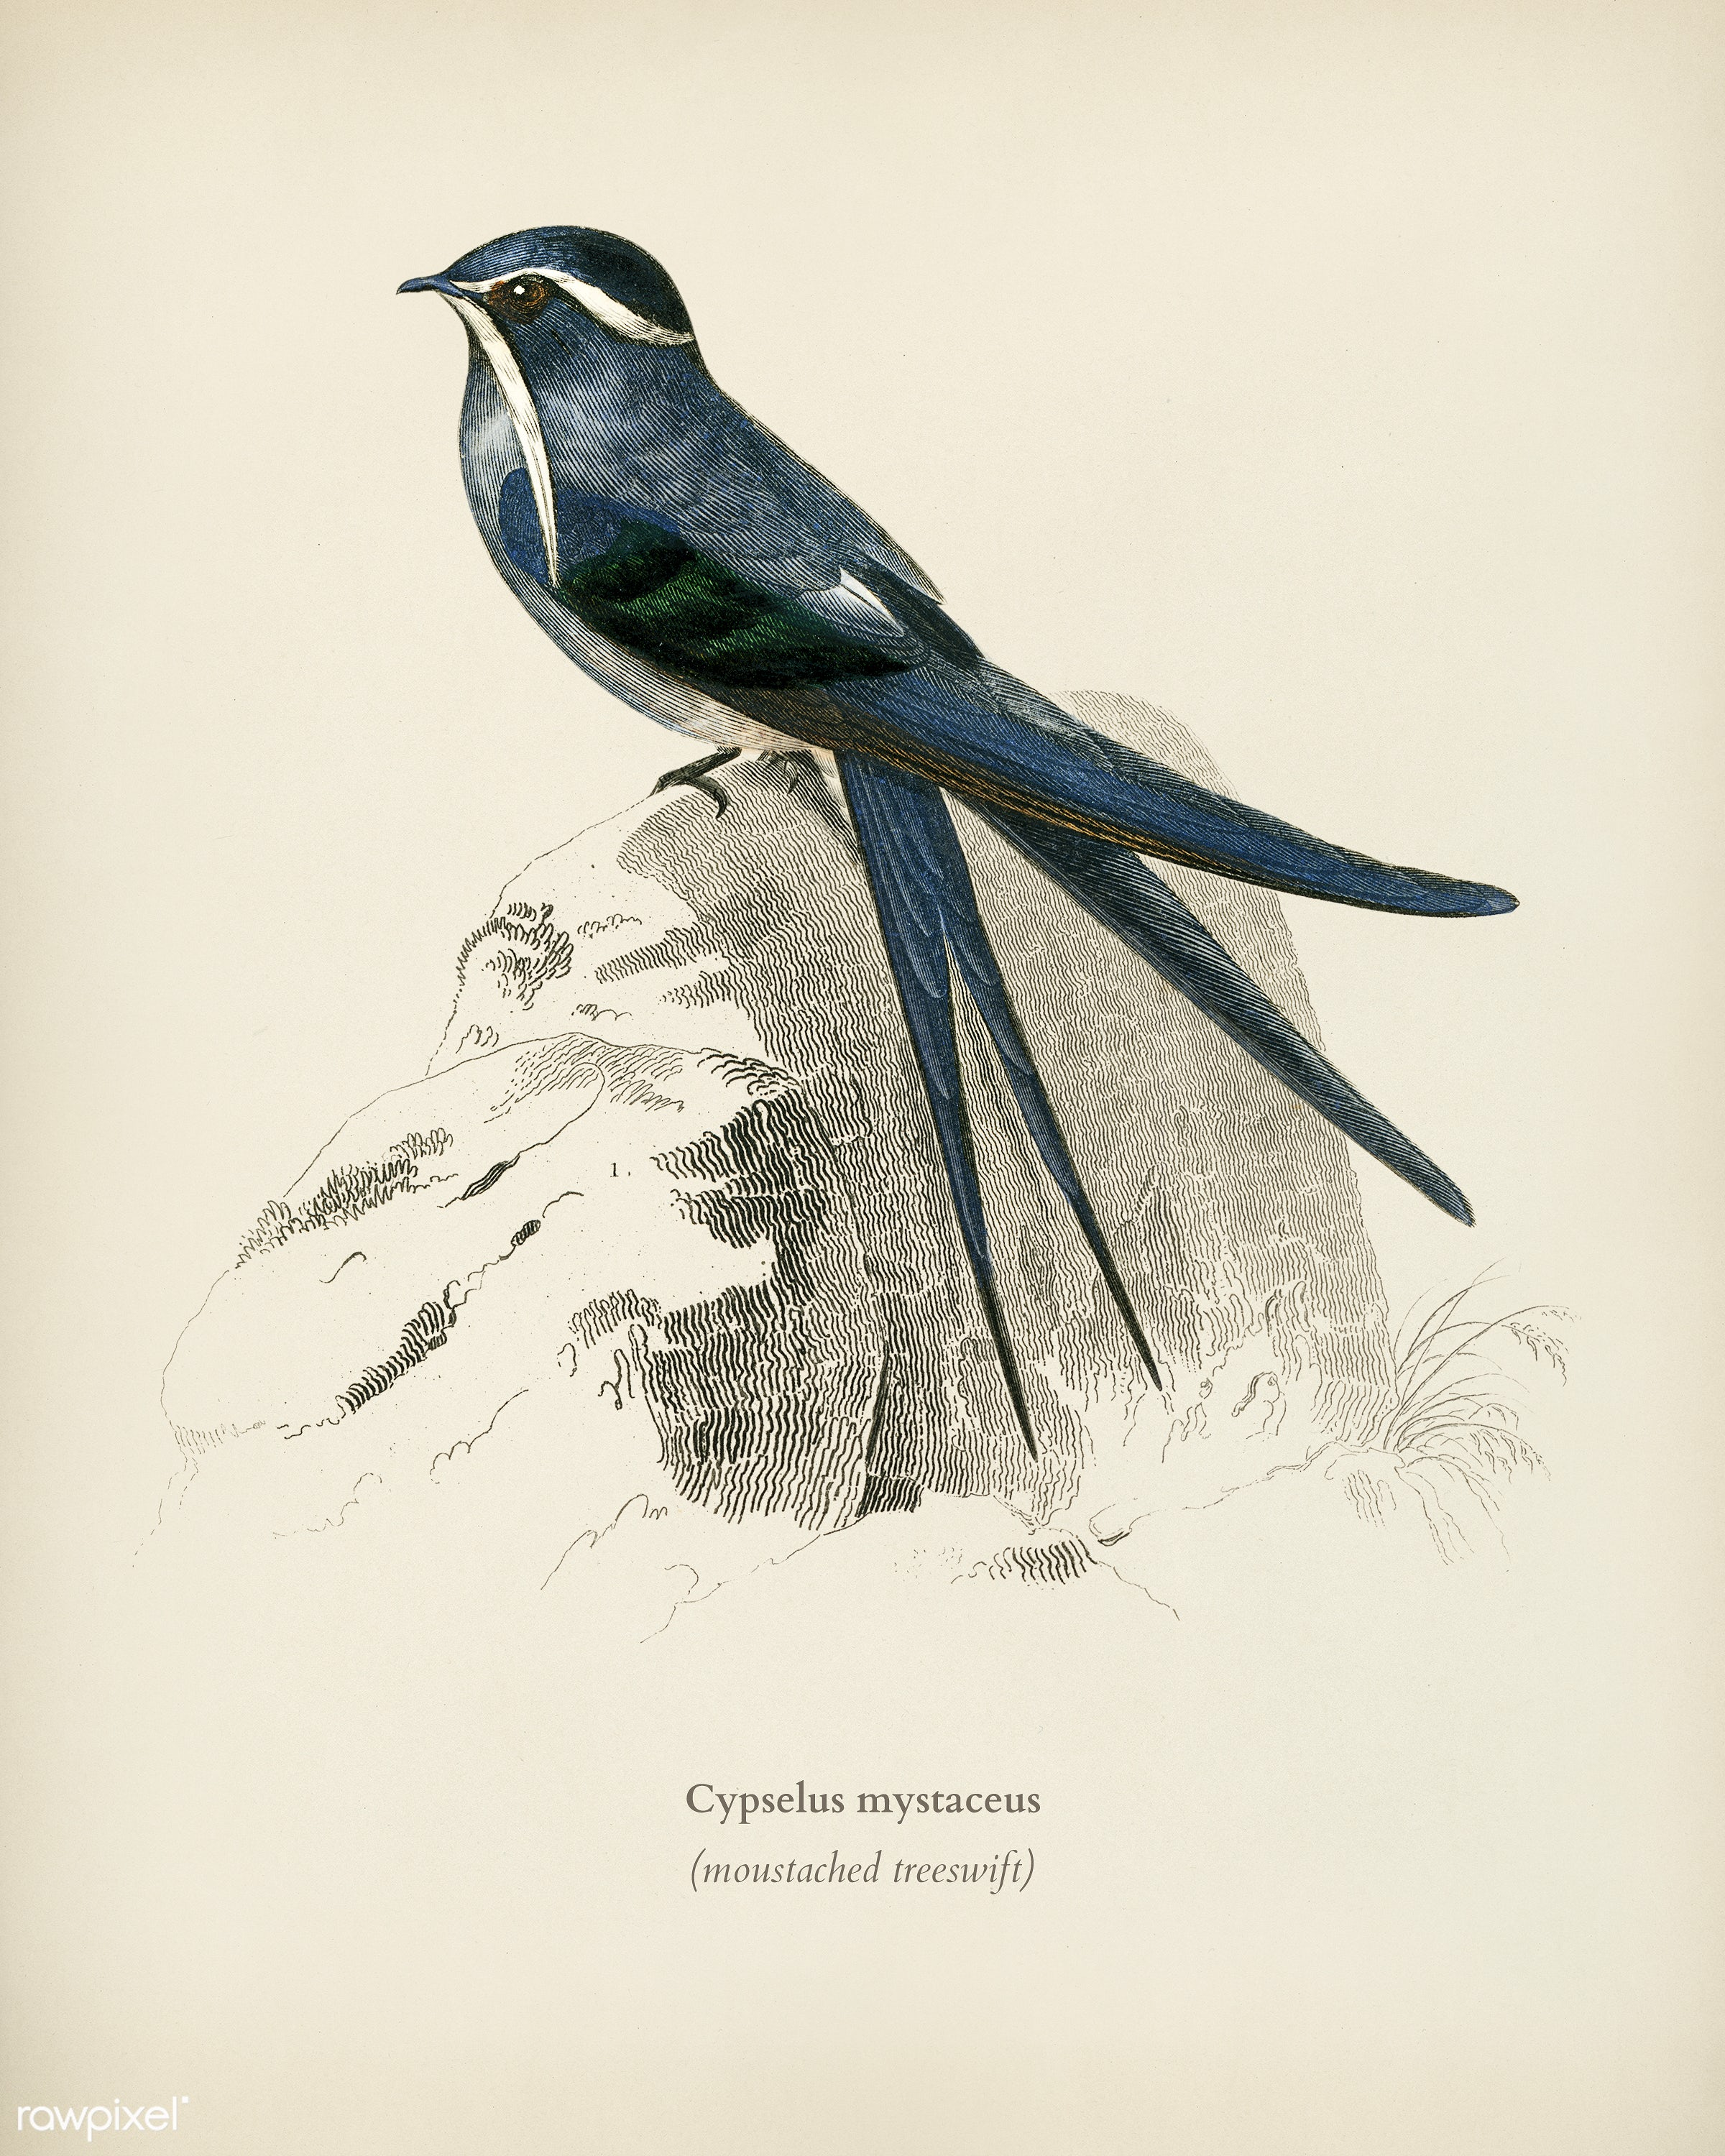 Moustached (Cypselus mystaceus) illustrated by Charles Dessalines D' Orbigny (1806-1876). Digitally enhanced from our...